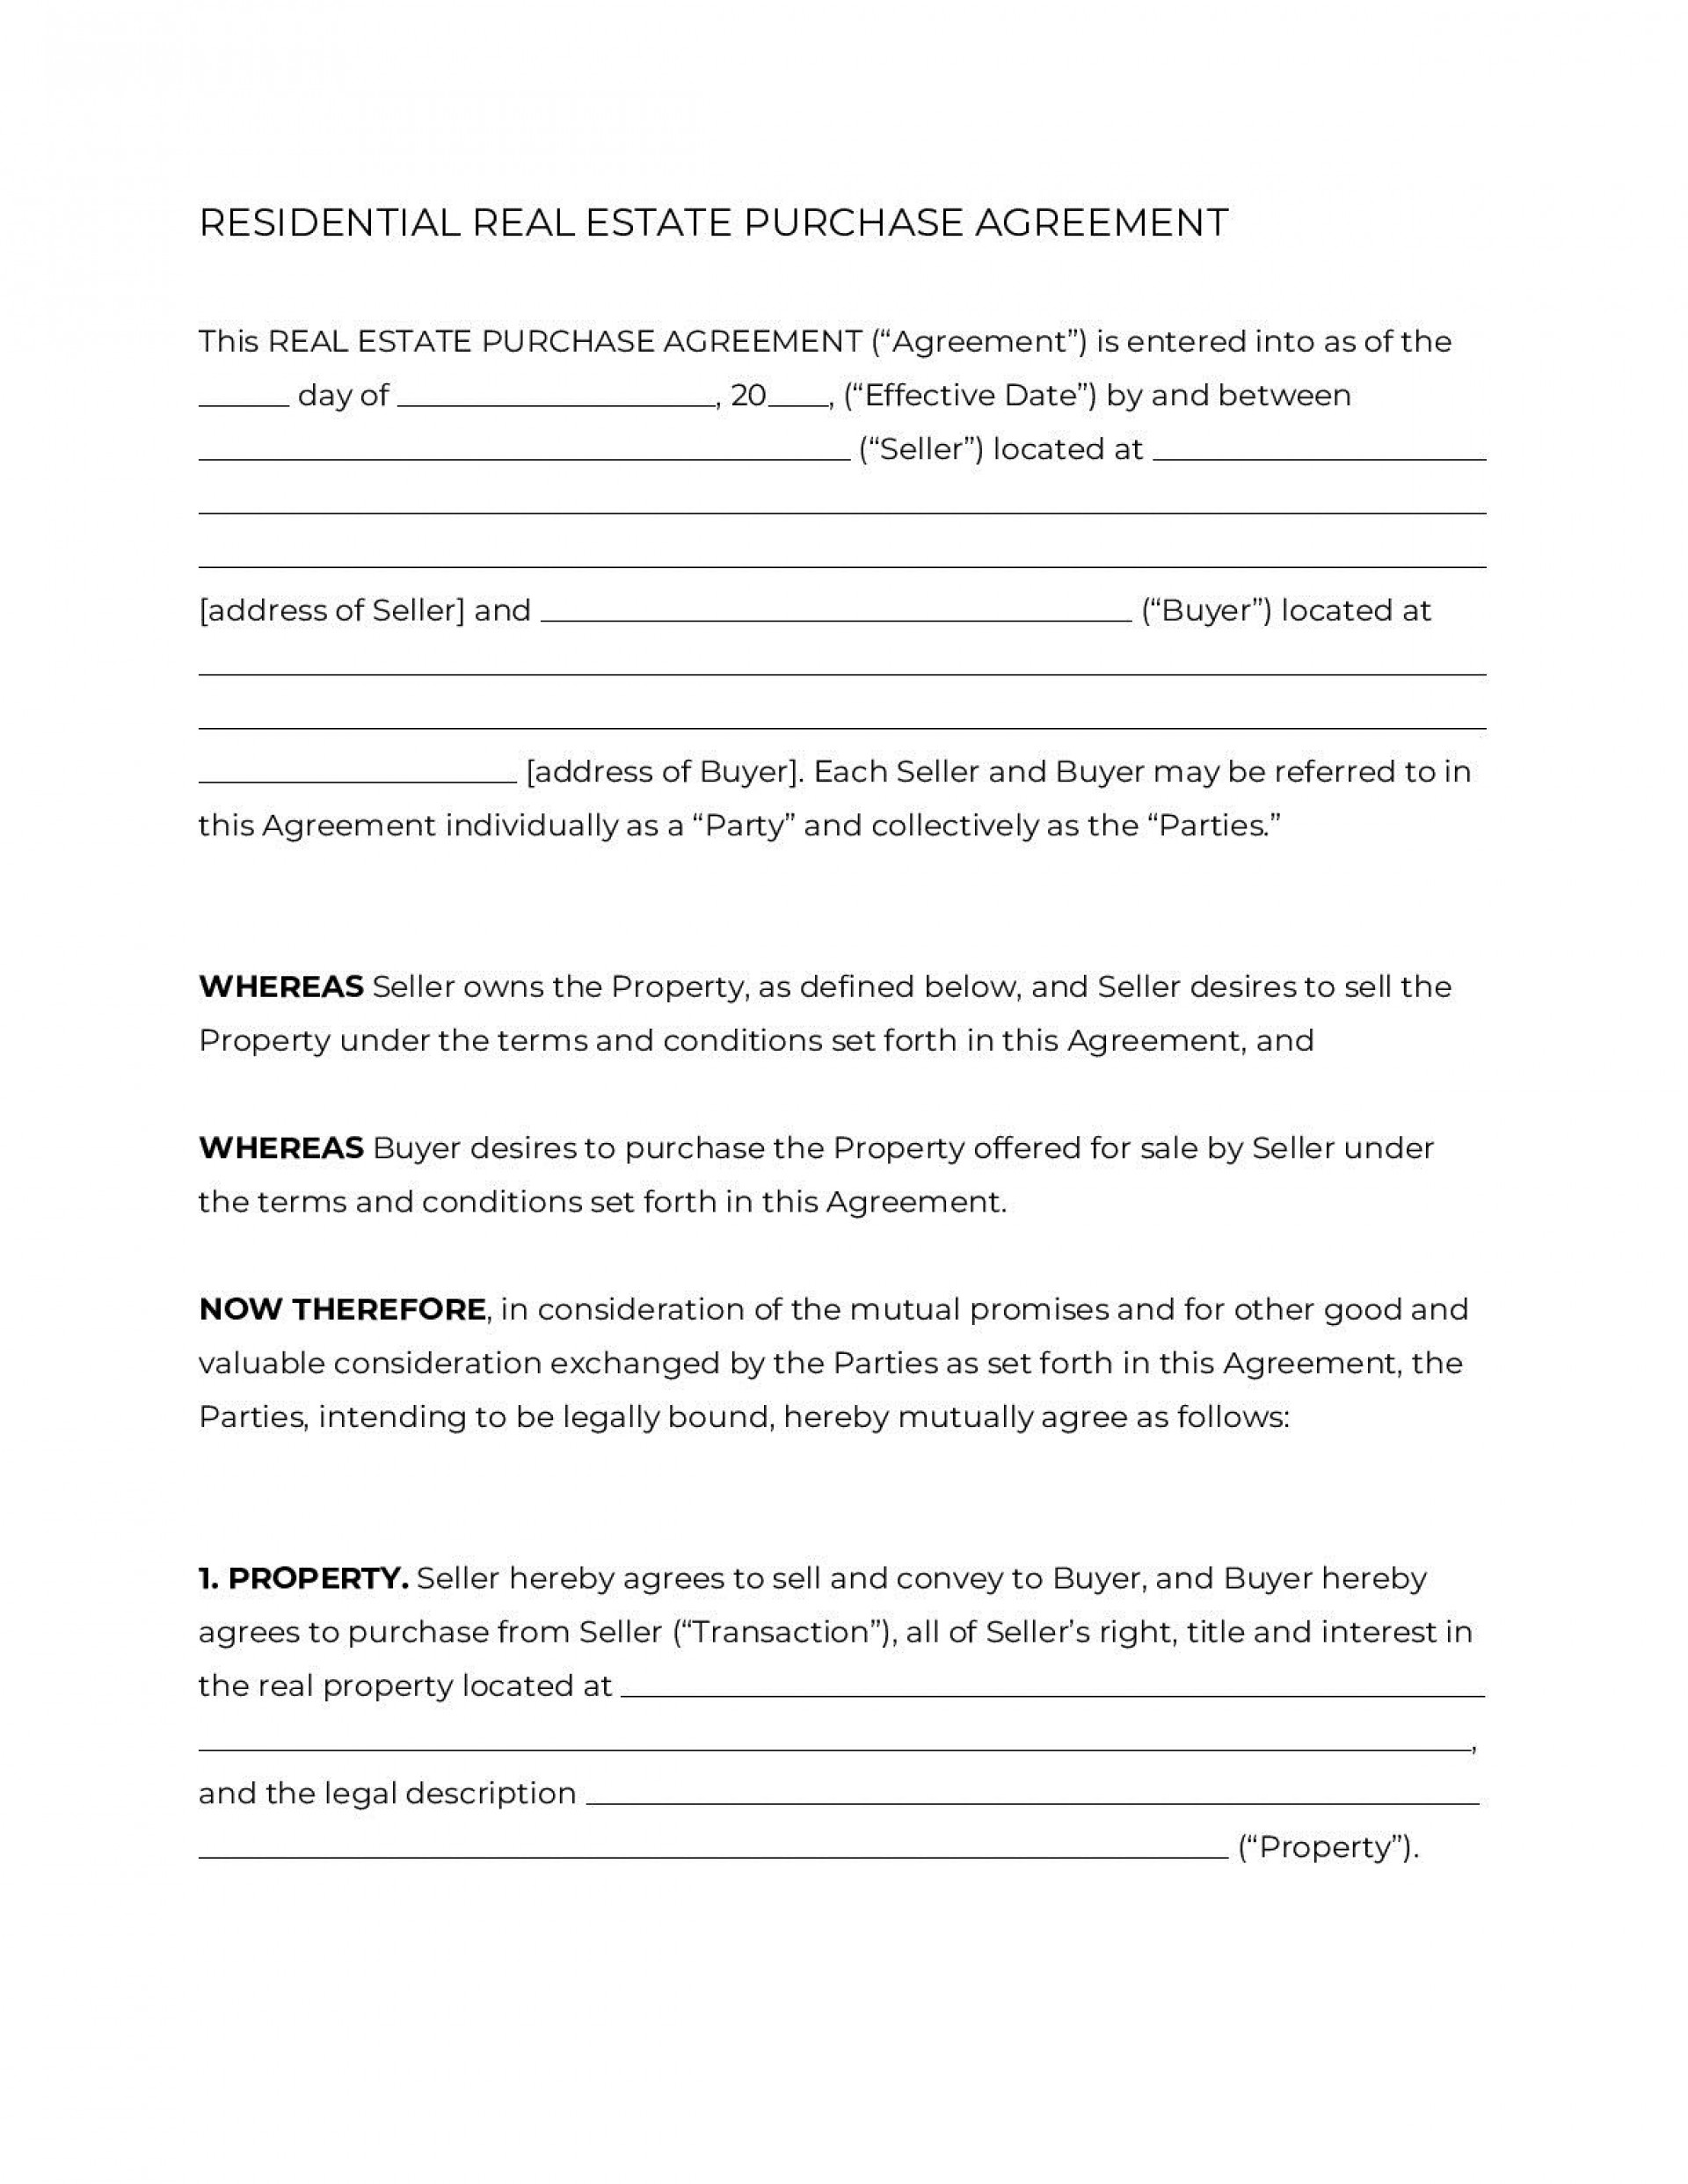 007 Singular Residential Purchase Agreement Template Highest Clarity  California Form Free1920